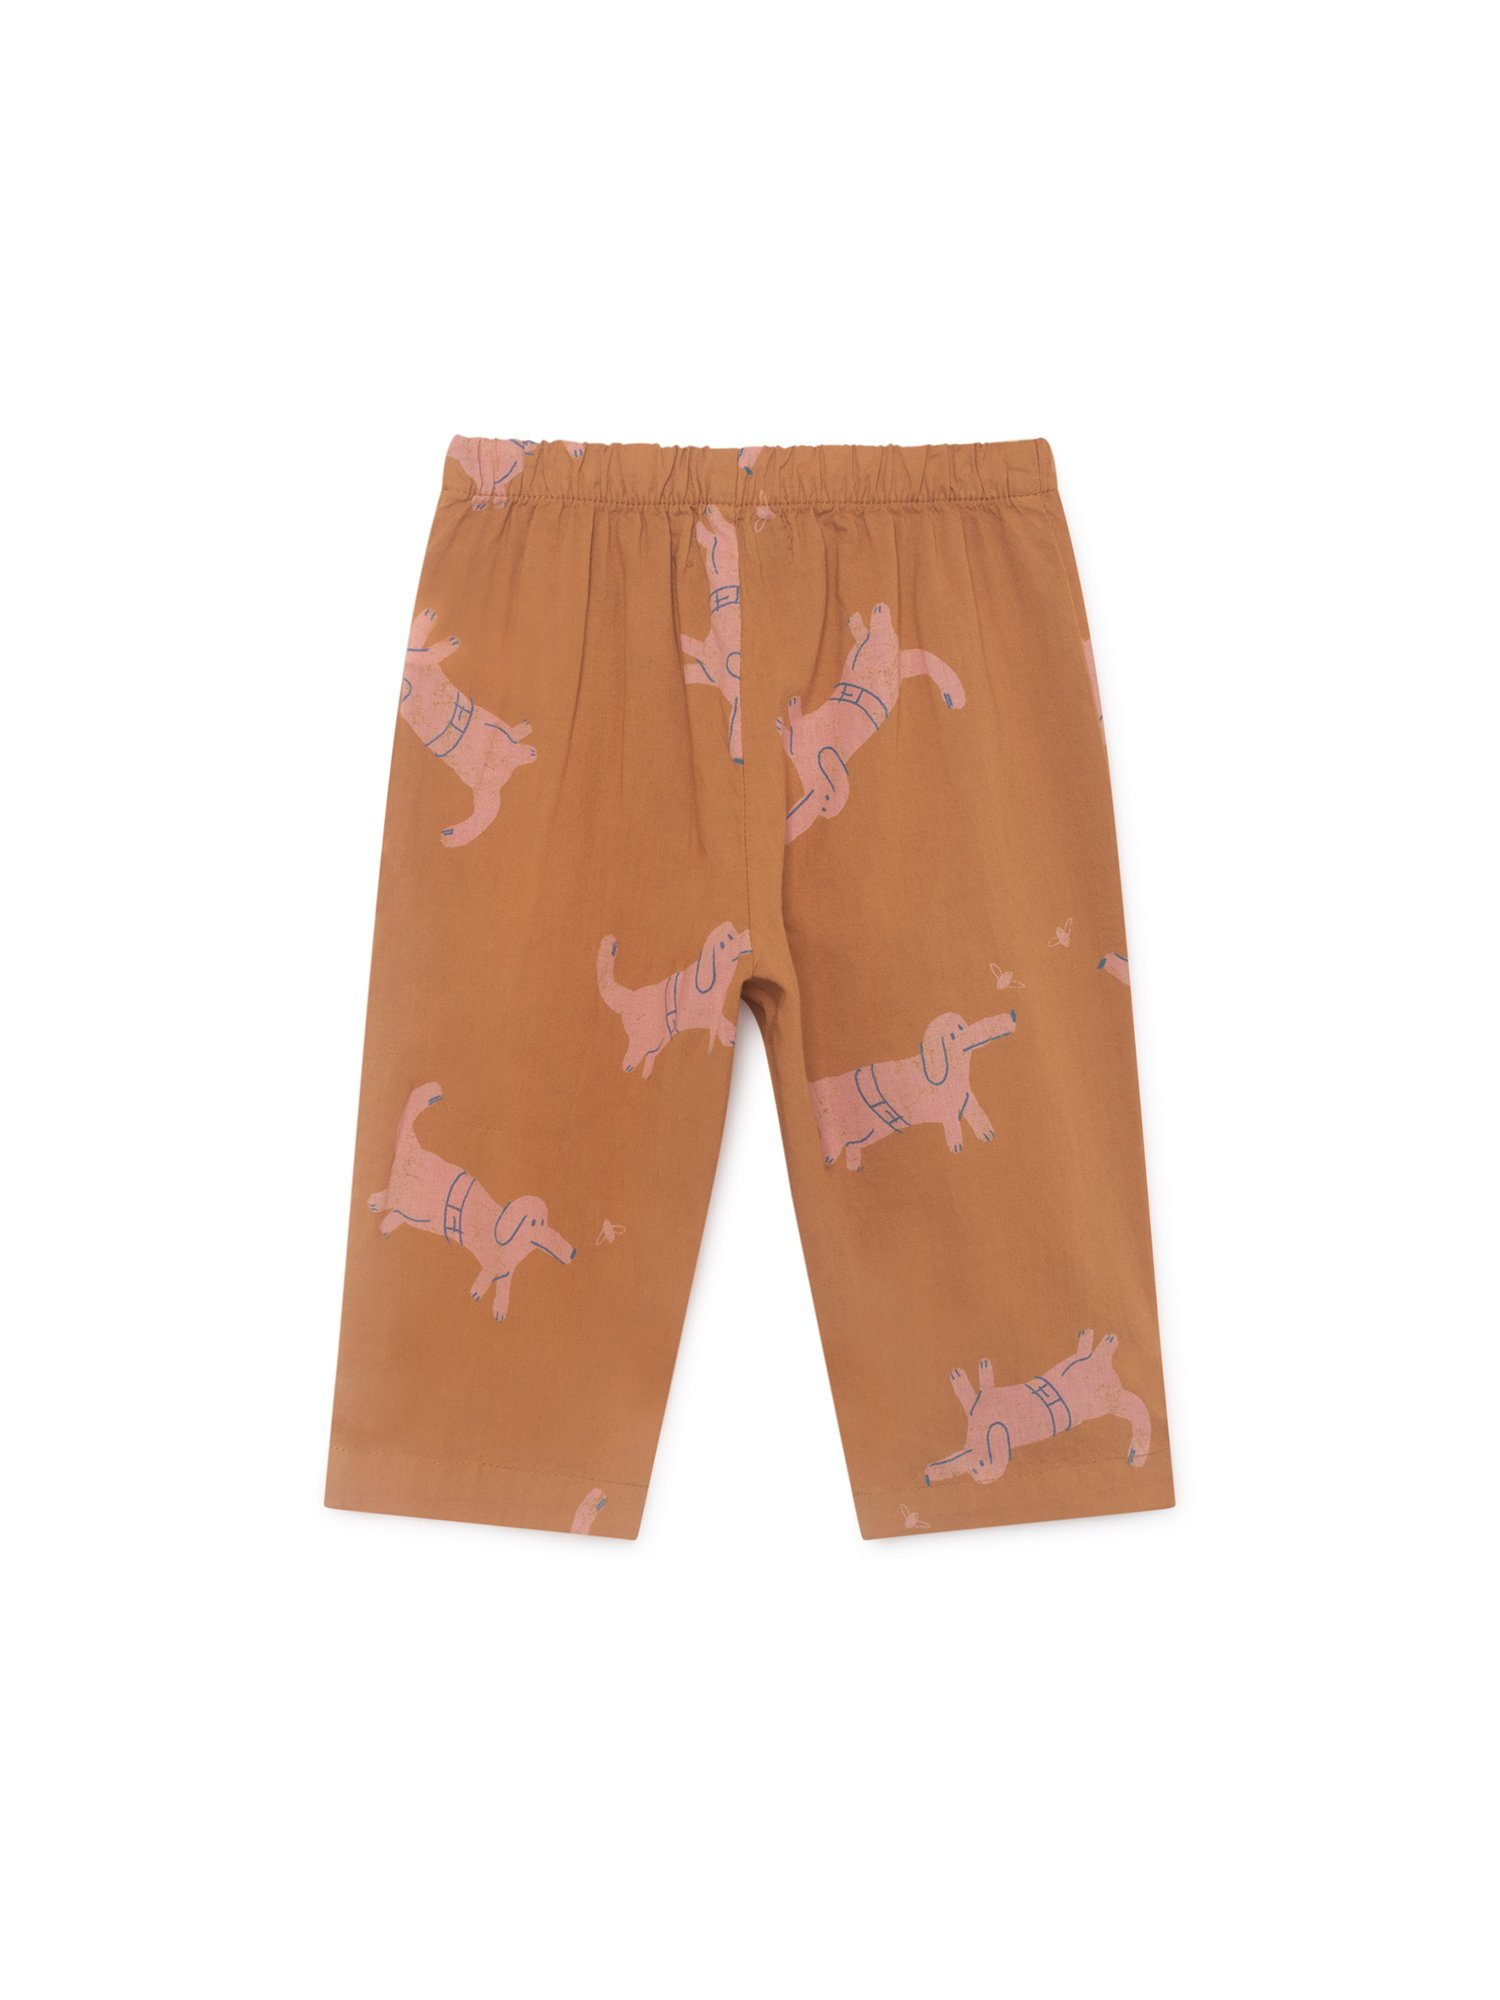 Dogs Baggy Trousers